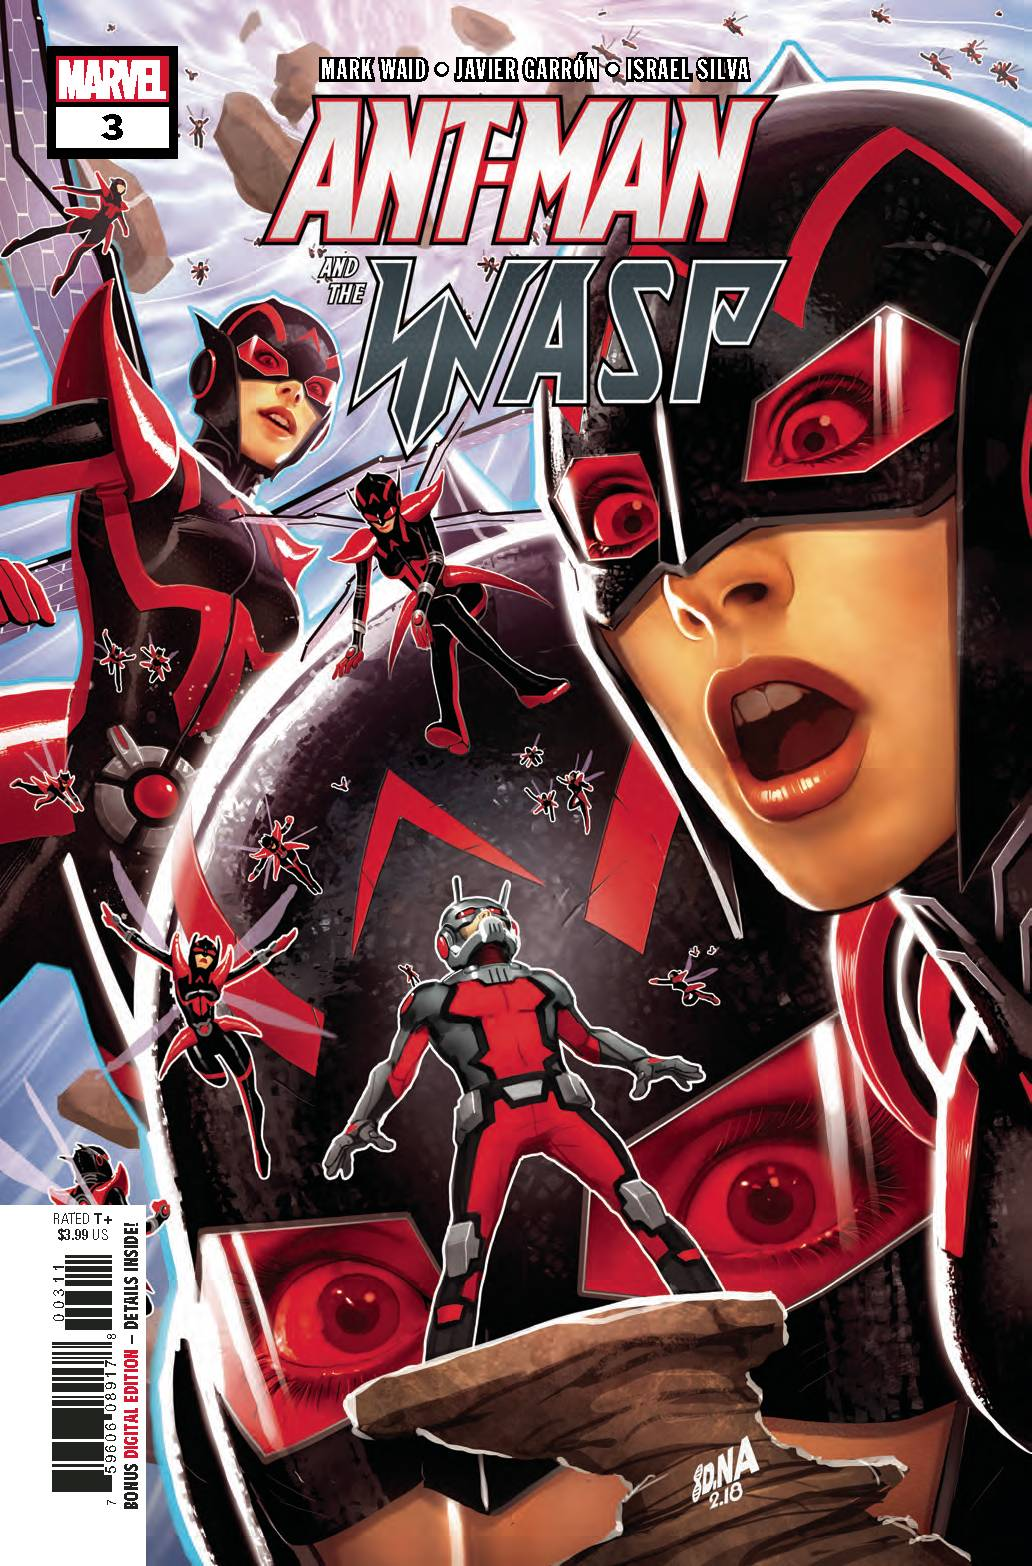 ANT-MAN AND THE WASP #3 (OF 5) (07/04/2018)